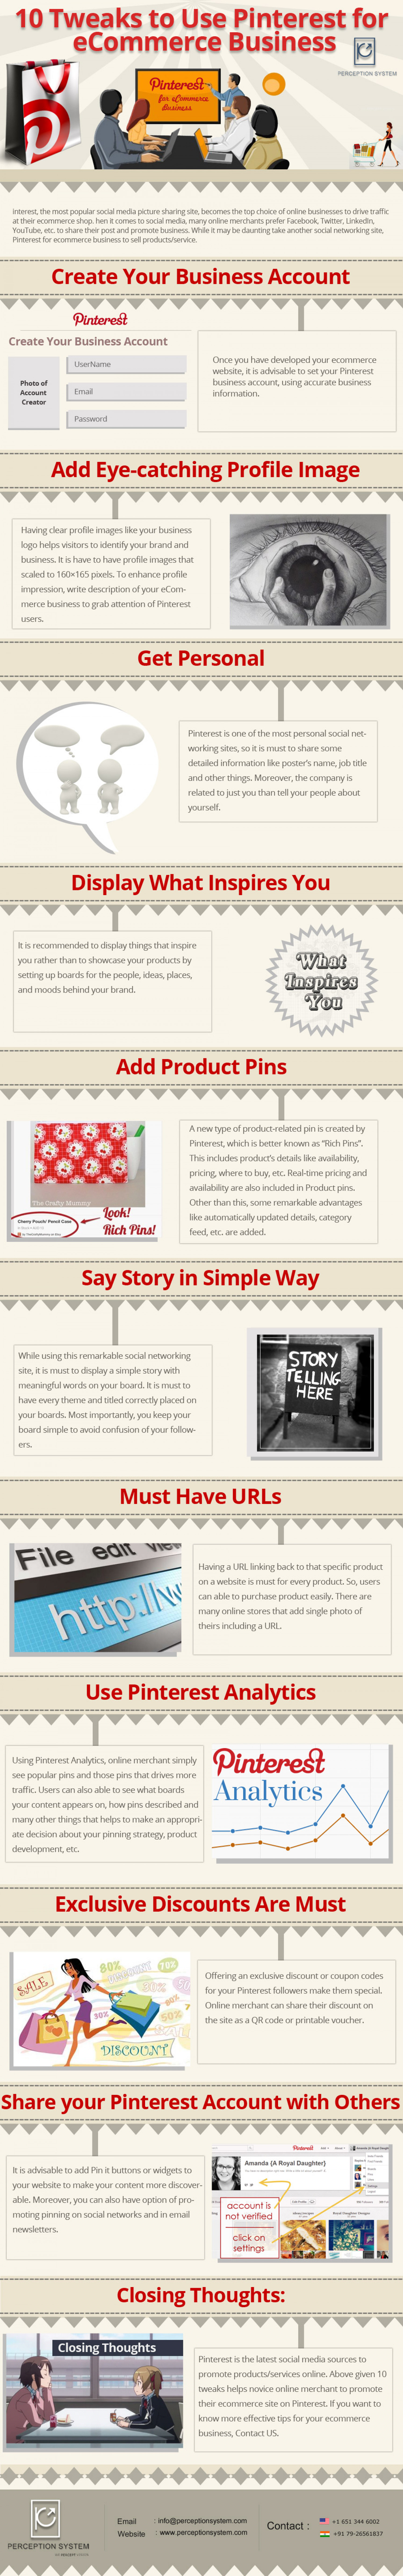 10 Tweaks to use Pinterest for eCommerce Business Infographic